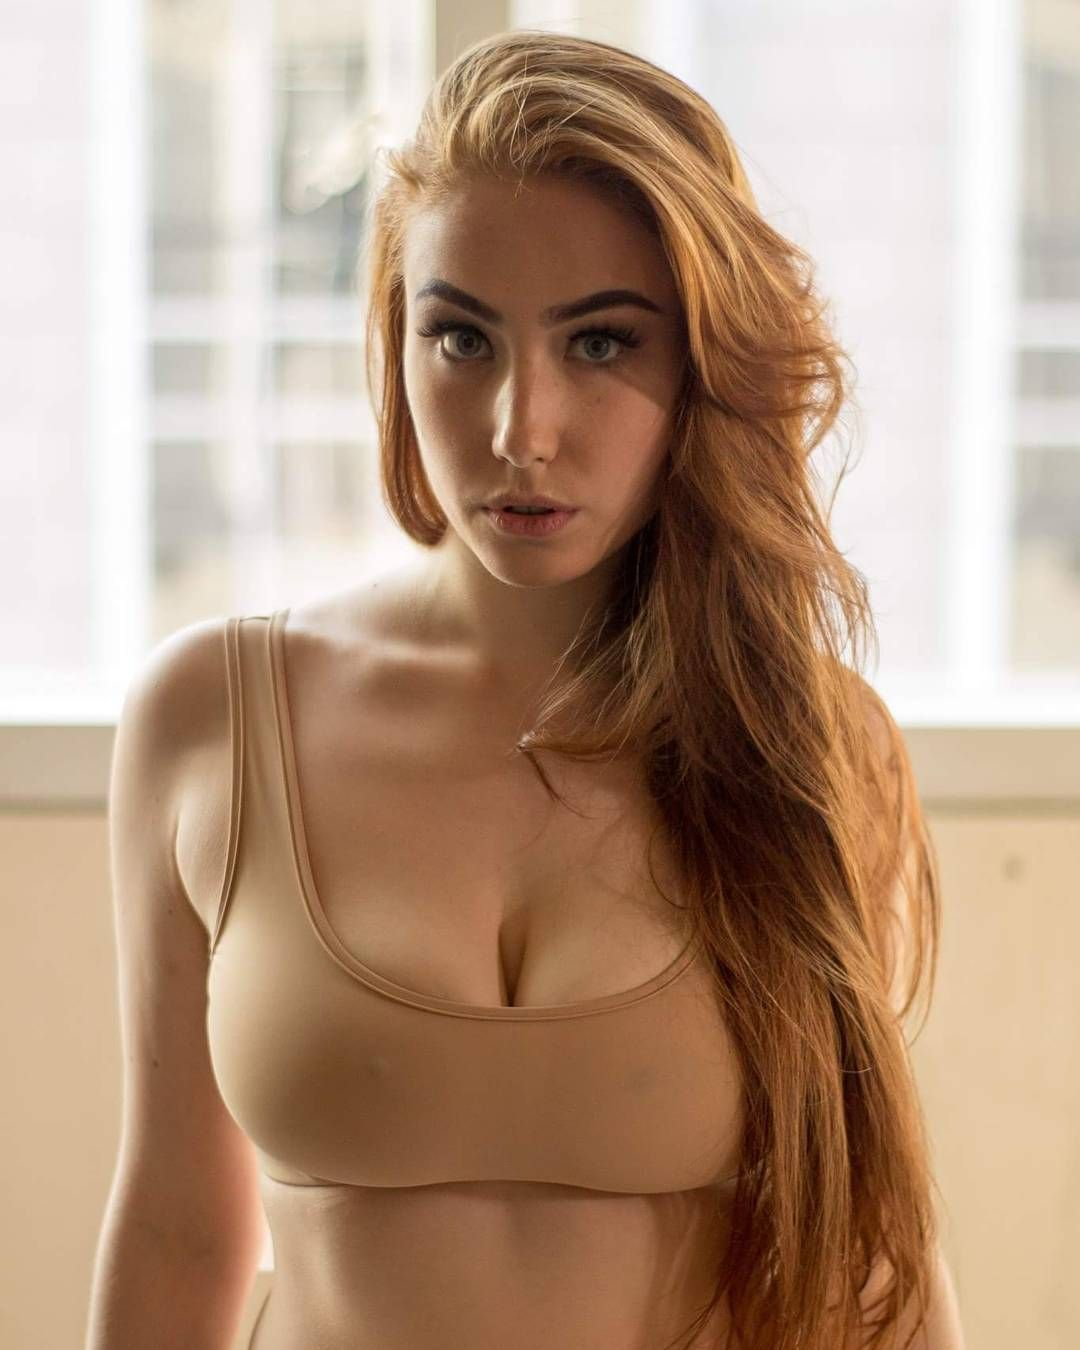 Images - Busty girls in tight tank tops